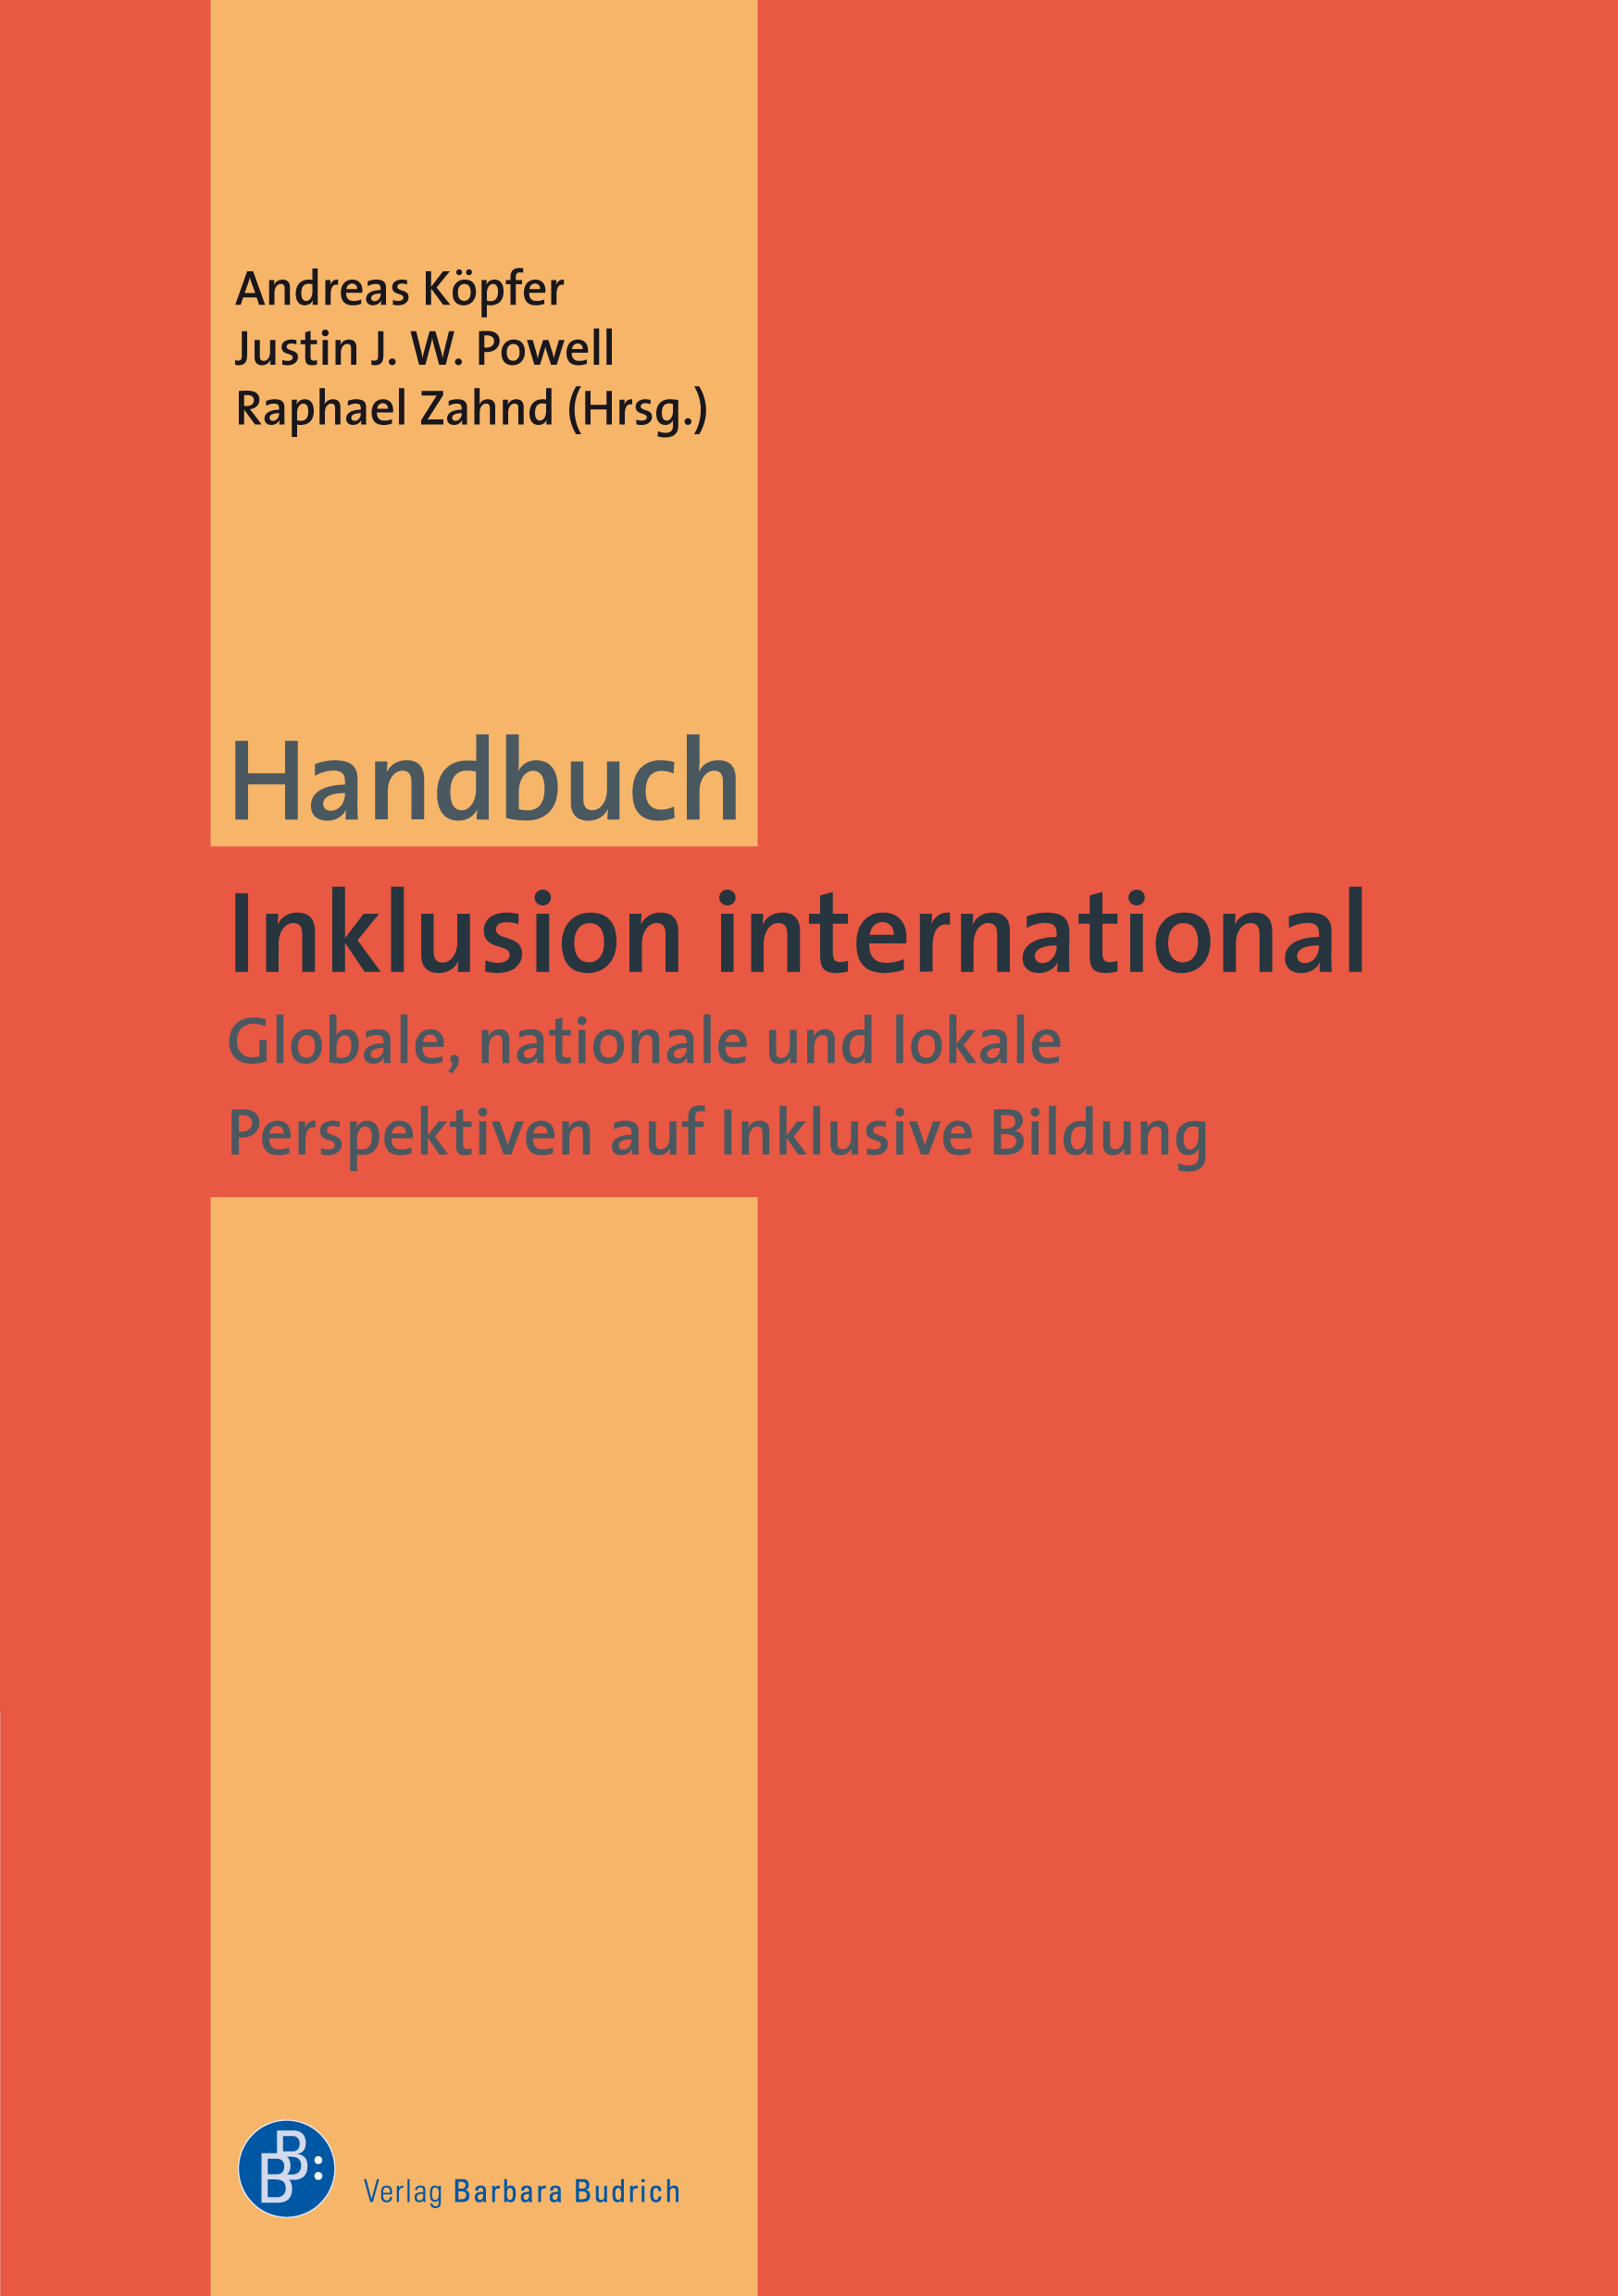 Köpfer/Powell/Zahnd (Hrsg.): Handbuch Inklusion international / International Handbook of Inclusive Education. Globale, nationale und lokale Perspektiven auf Inklusive Bildung / Global, National and Local Perspectives. Verlag Barbara Budrich.